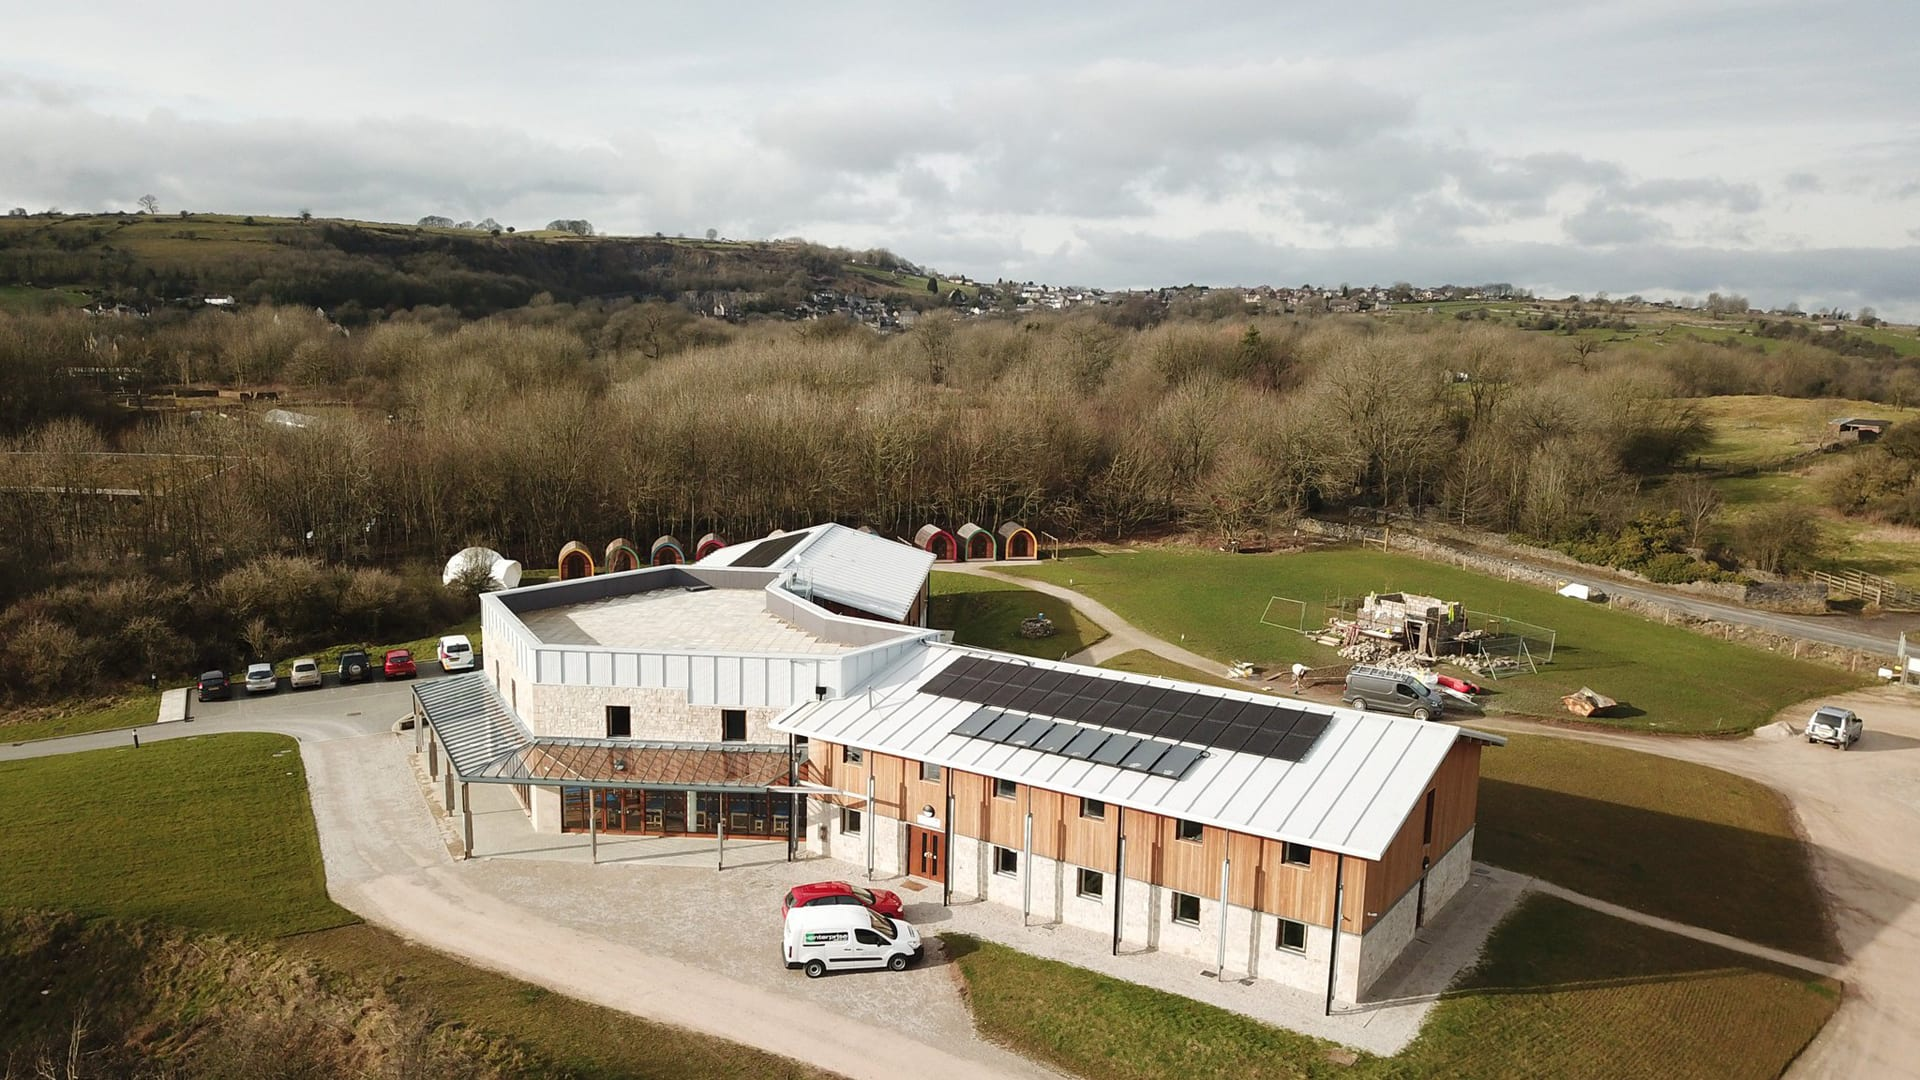 Mount Cook Adventure Centre and Hostel. Large Group accommodation in the Peak District